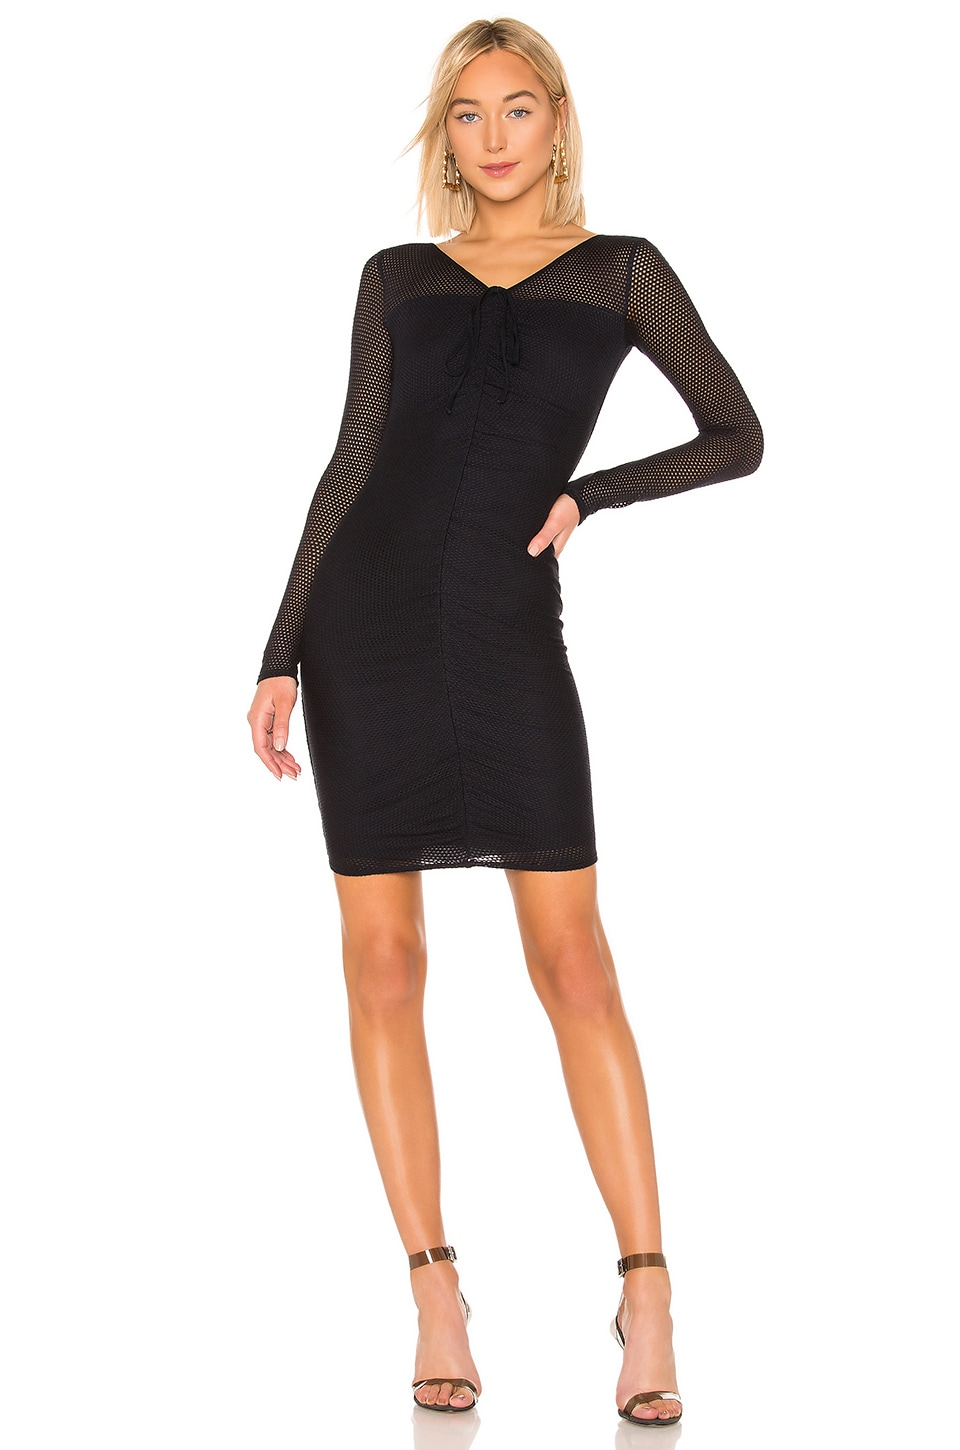 Land Lubber Mesh Dress